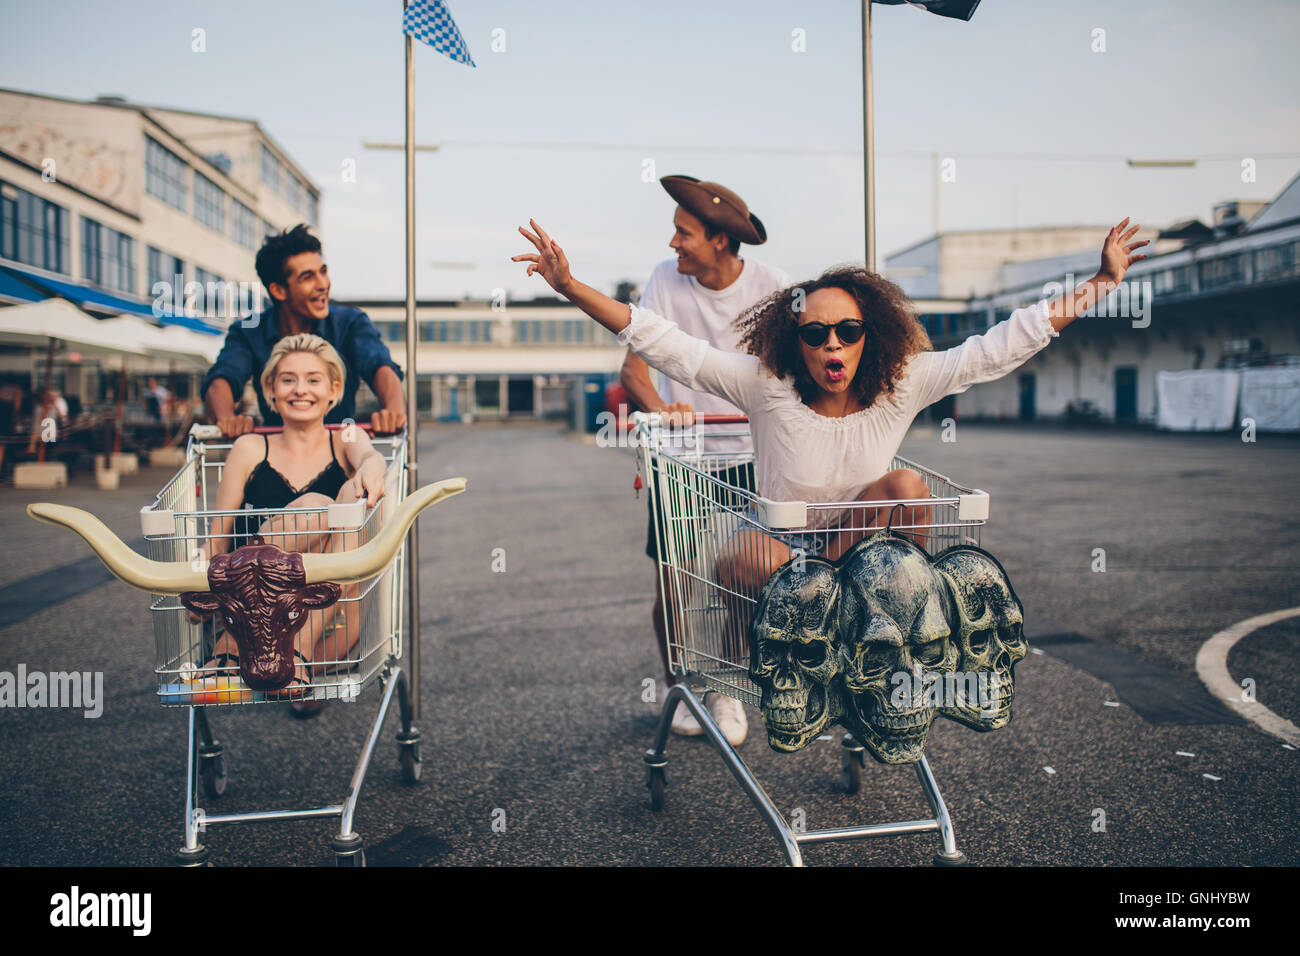 Young friends having fun on a shopping trolley. Multiethnic young people racing on shopping cart. - Stock Image